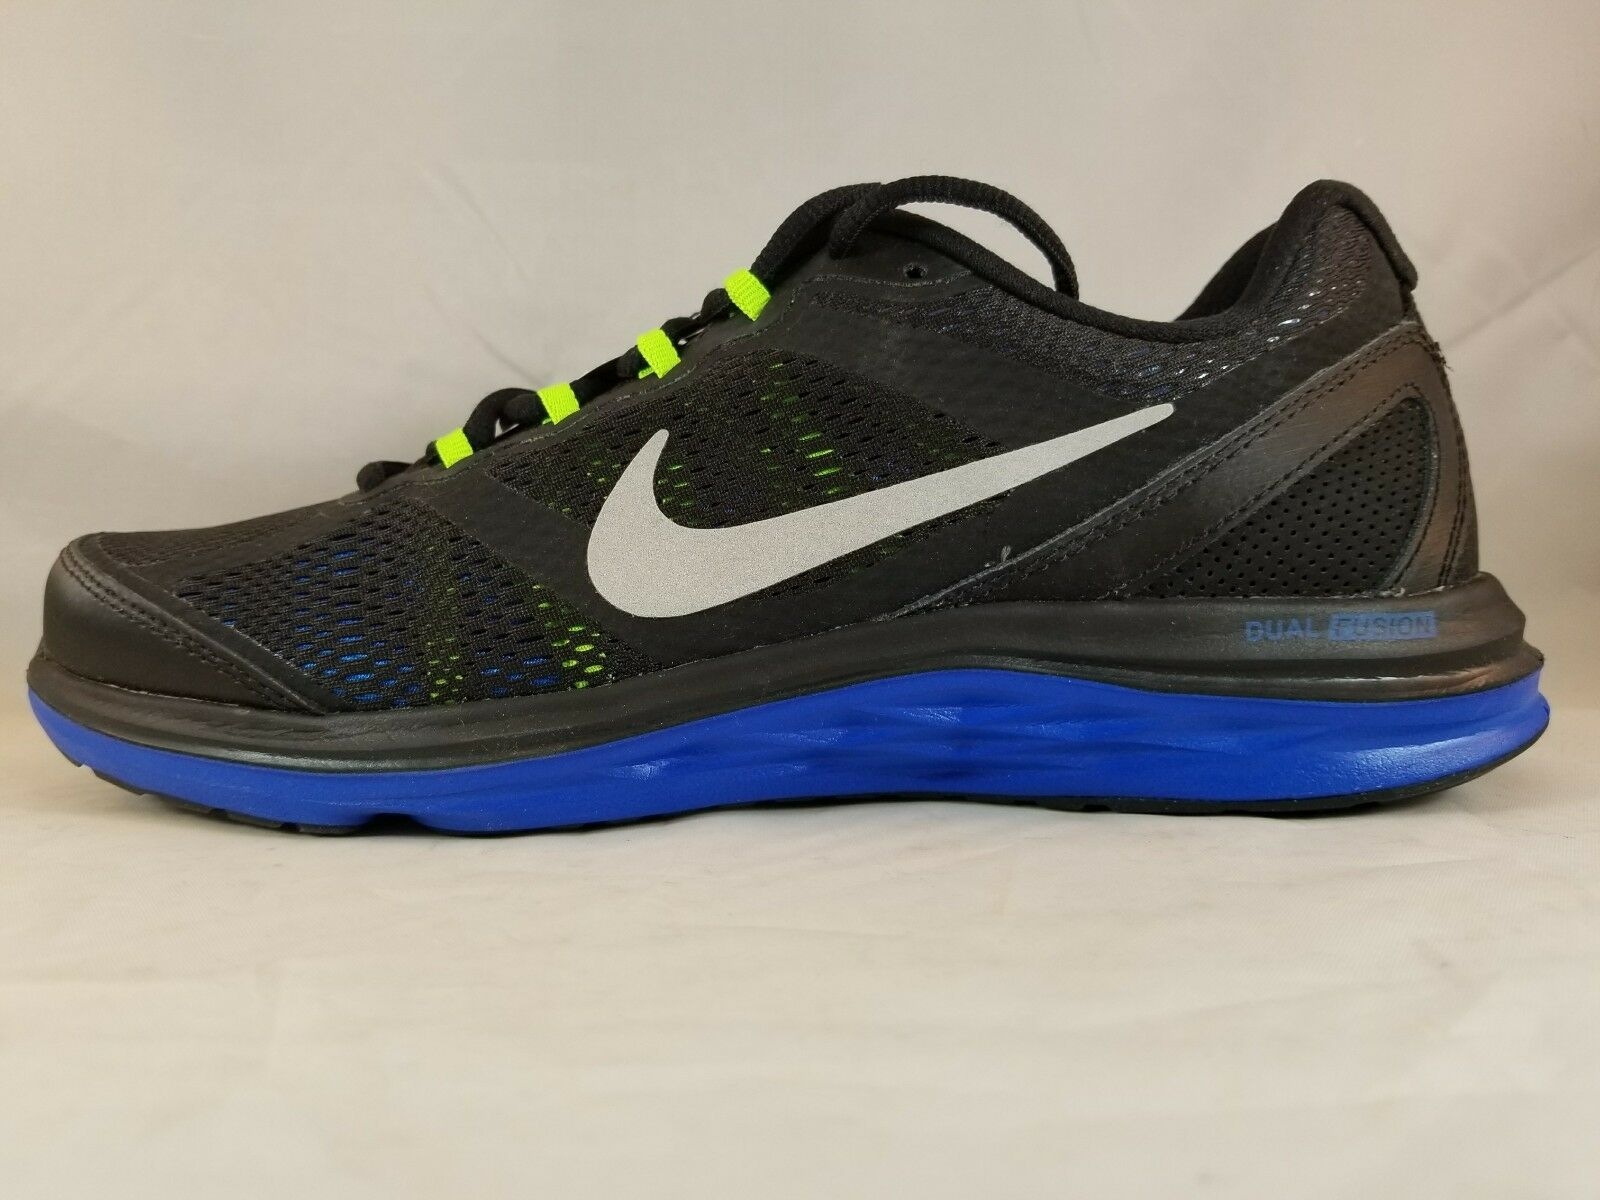 Nike Dual Fusion Run 3 Men's Running shoes 653596 001 Size 7